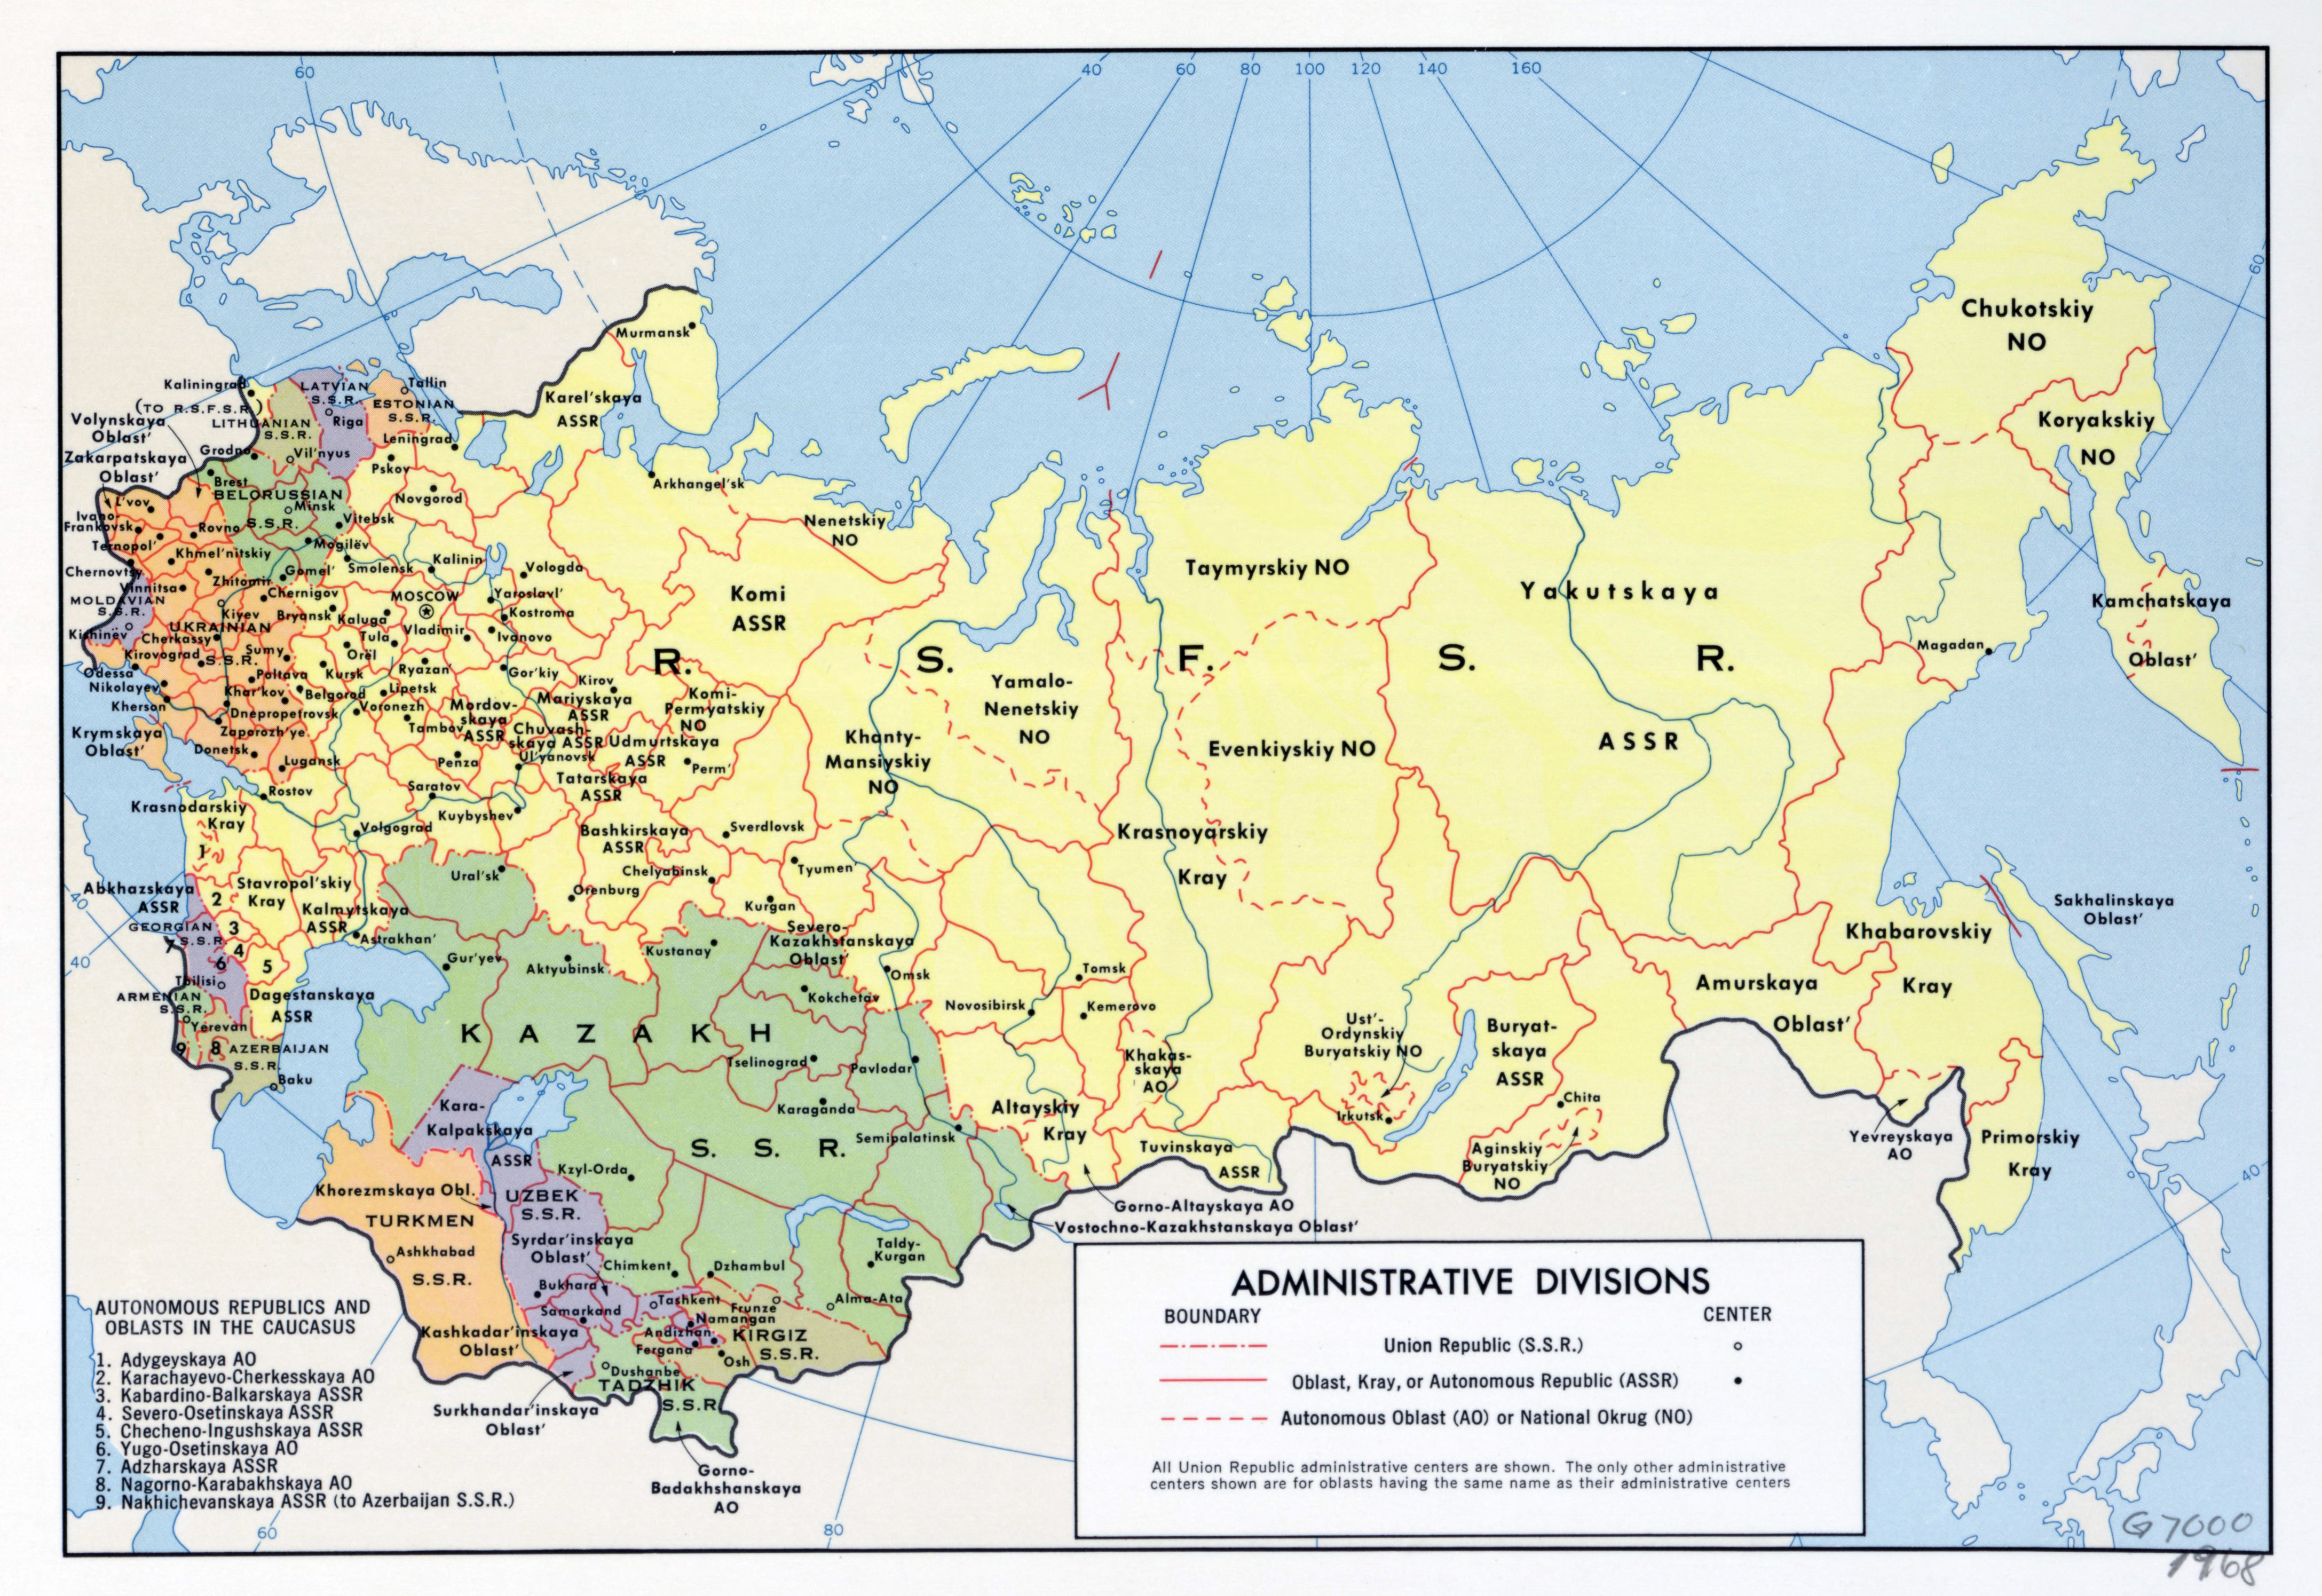 Large scale administrative divisions map of the USSR 1968